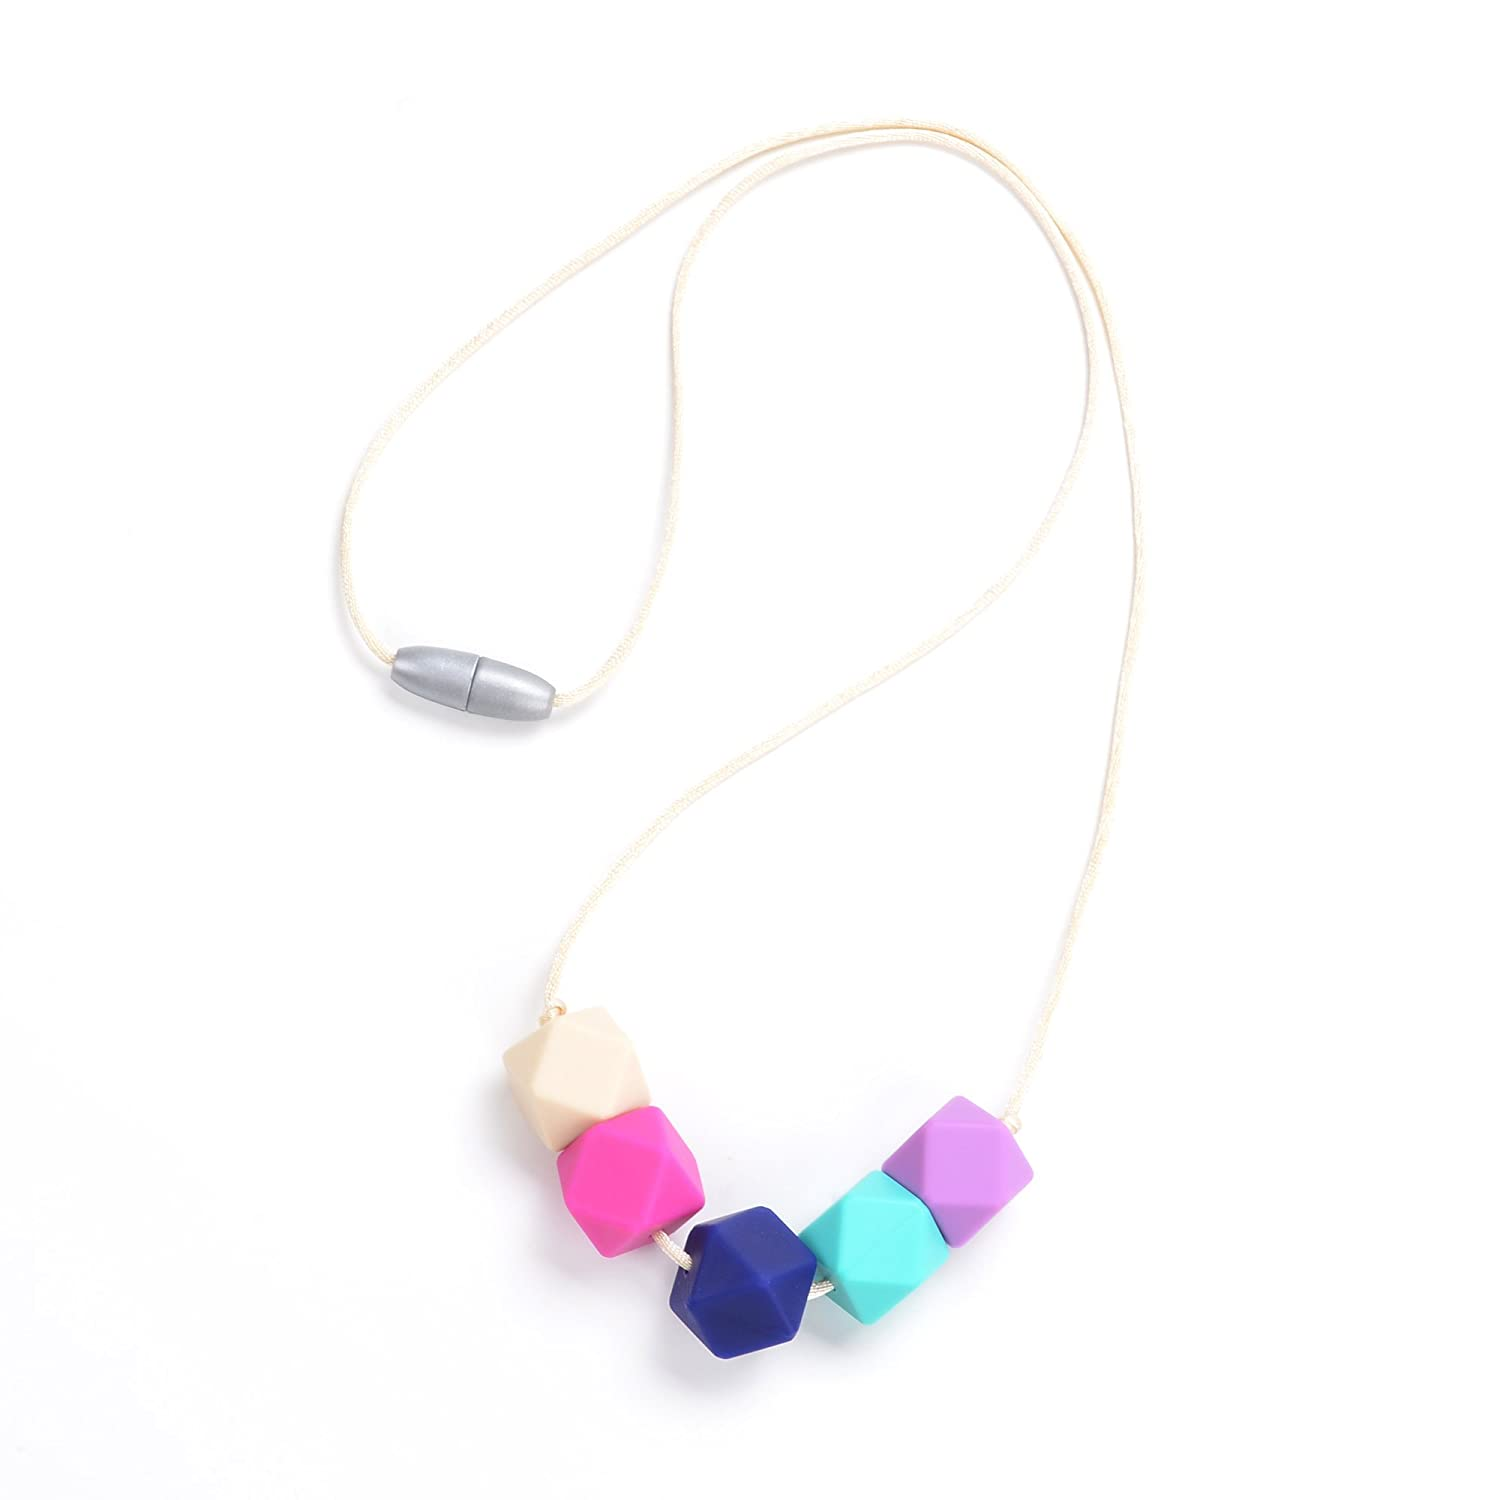 BPA FREE and FDA Approved Consider It Maid Silicone Teething Necklace for Mom to Wear Grey//Mint//Navajo White//Scarlet Red//Purple FREE E-BOOK Down to Earth